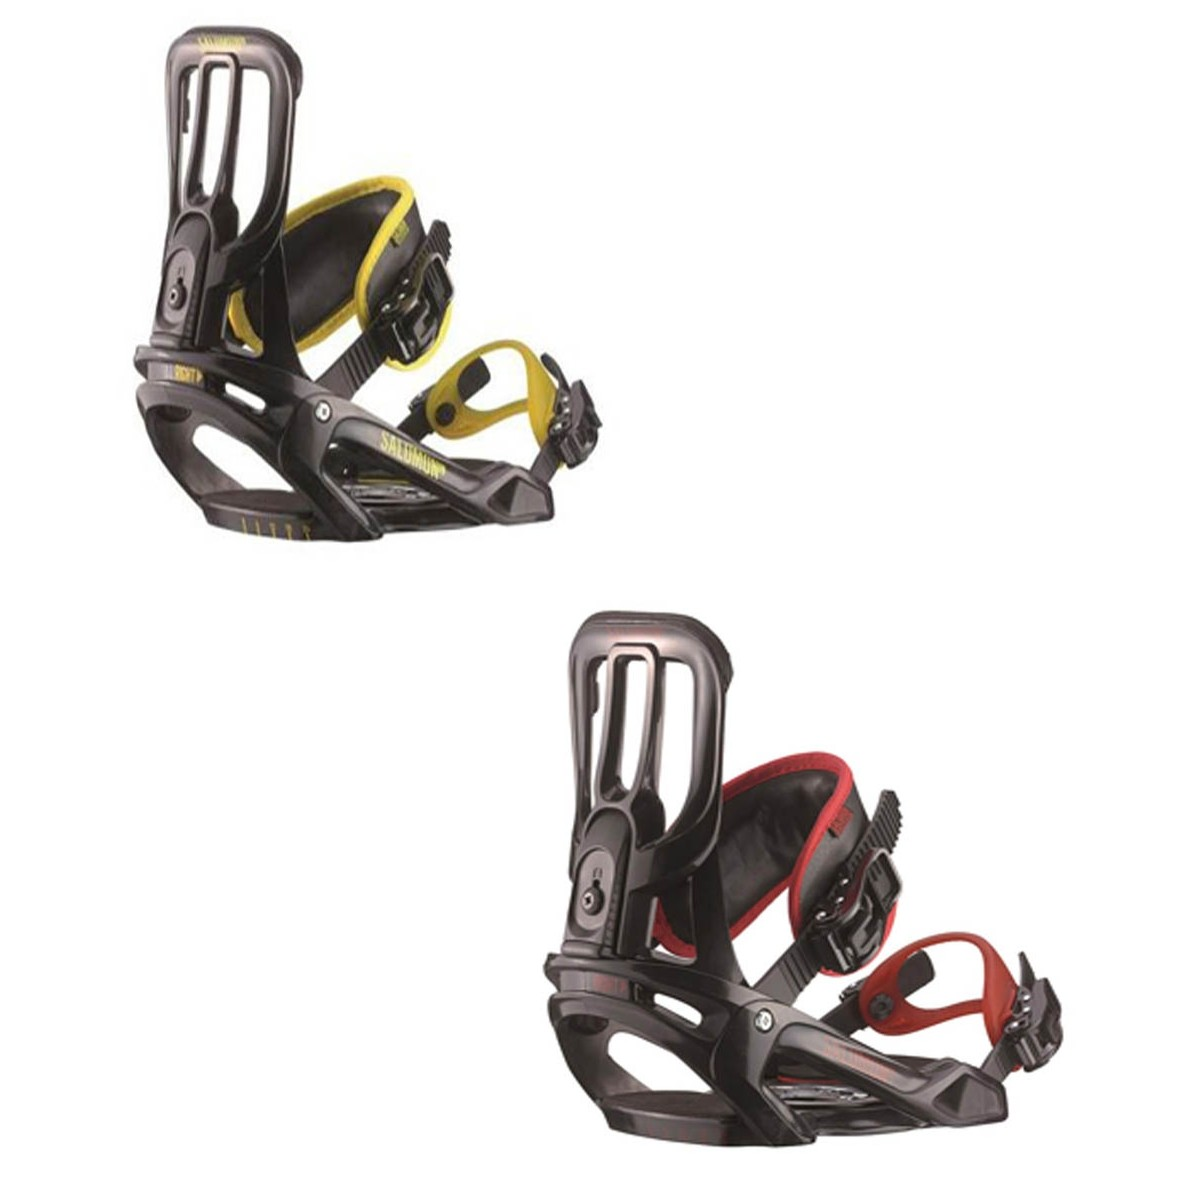 Snowboard Basic Bindings only